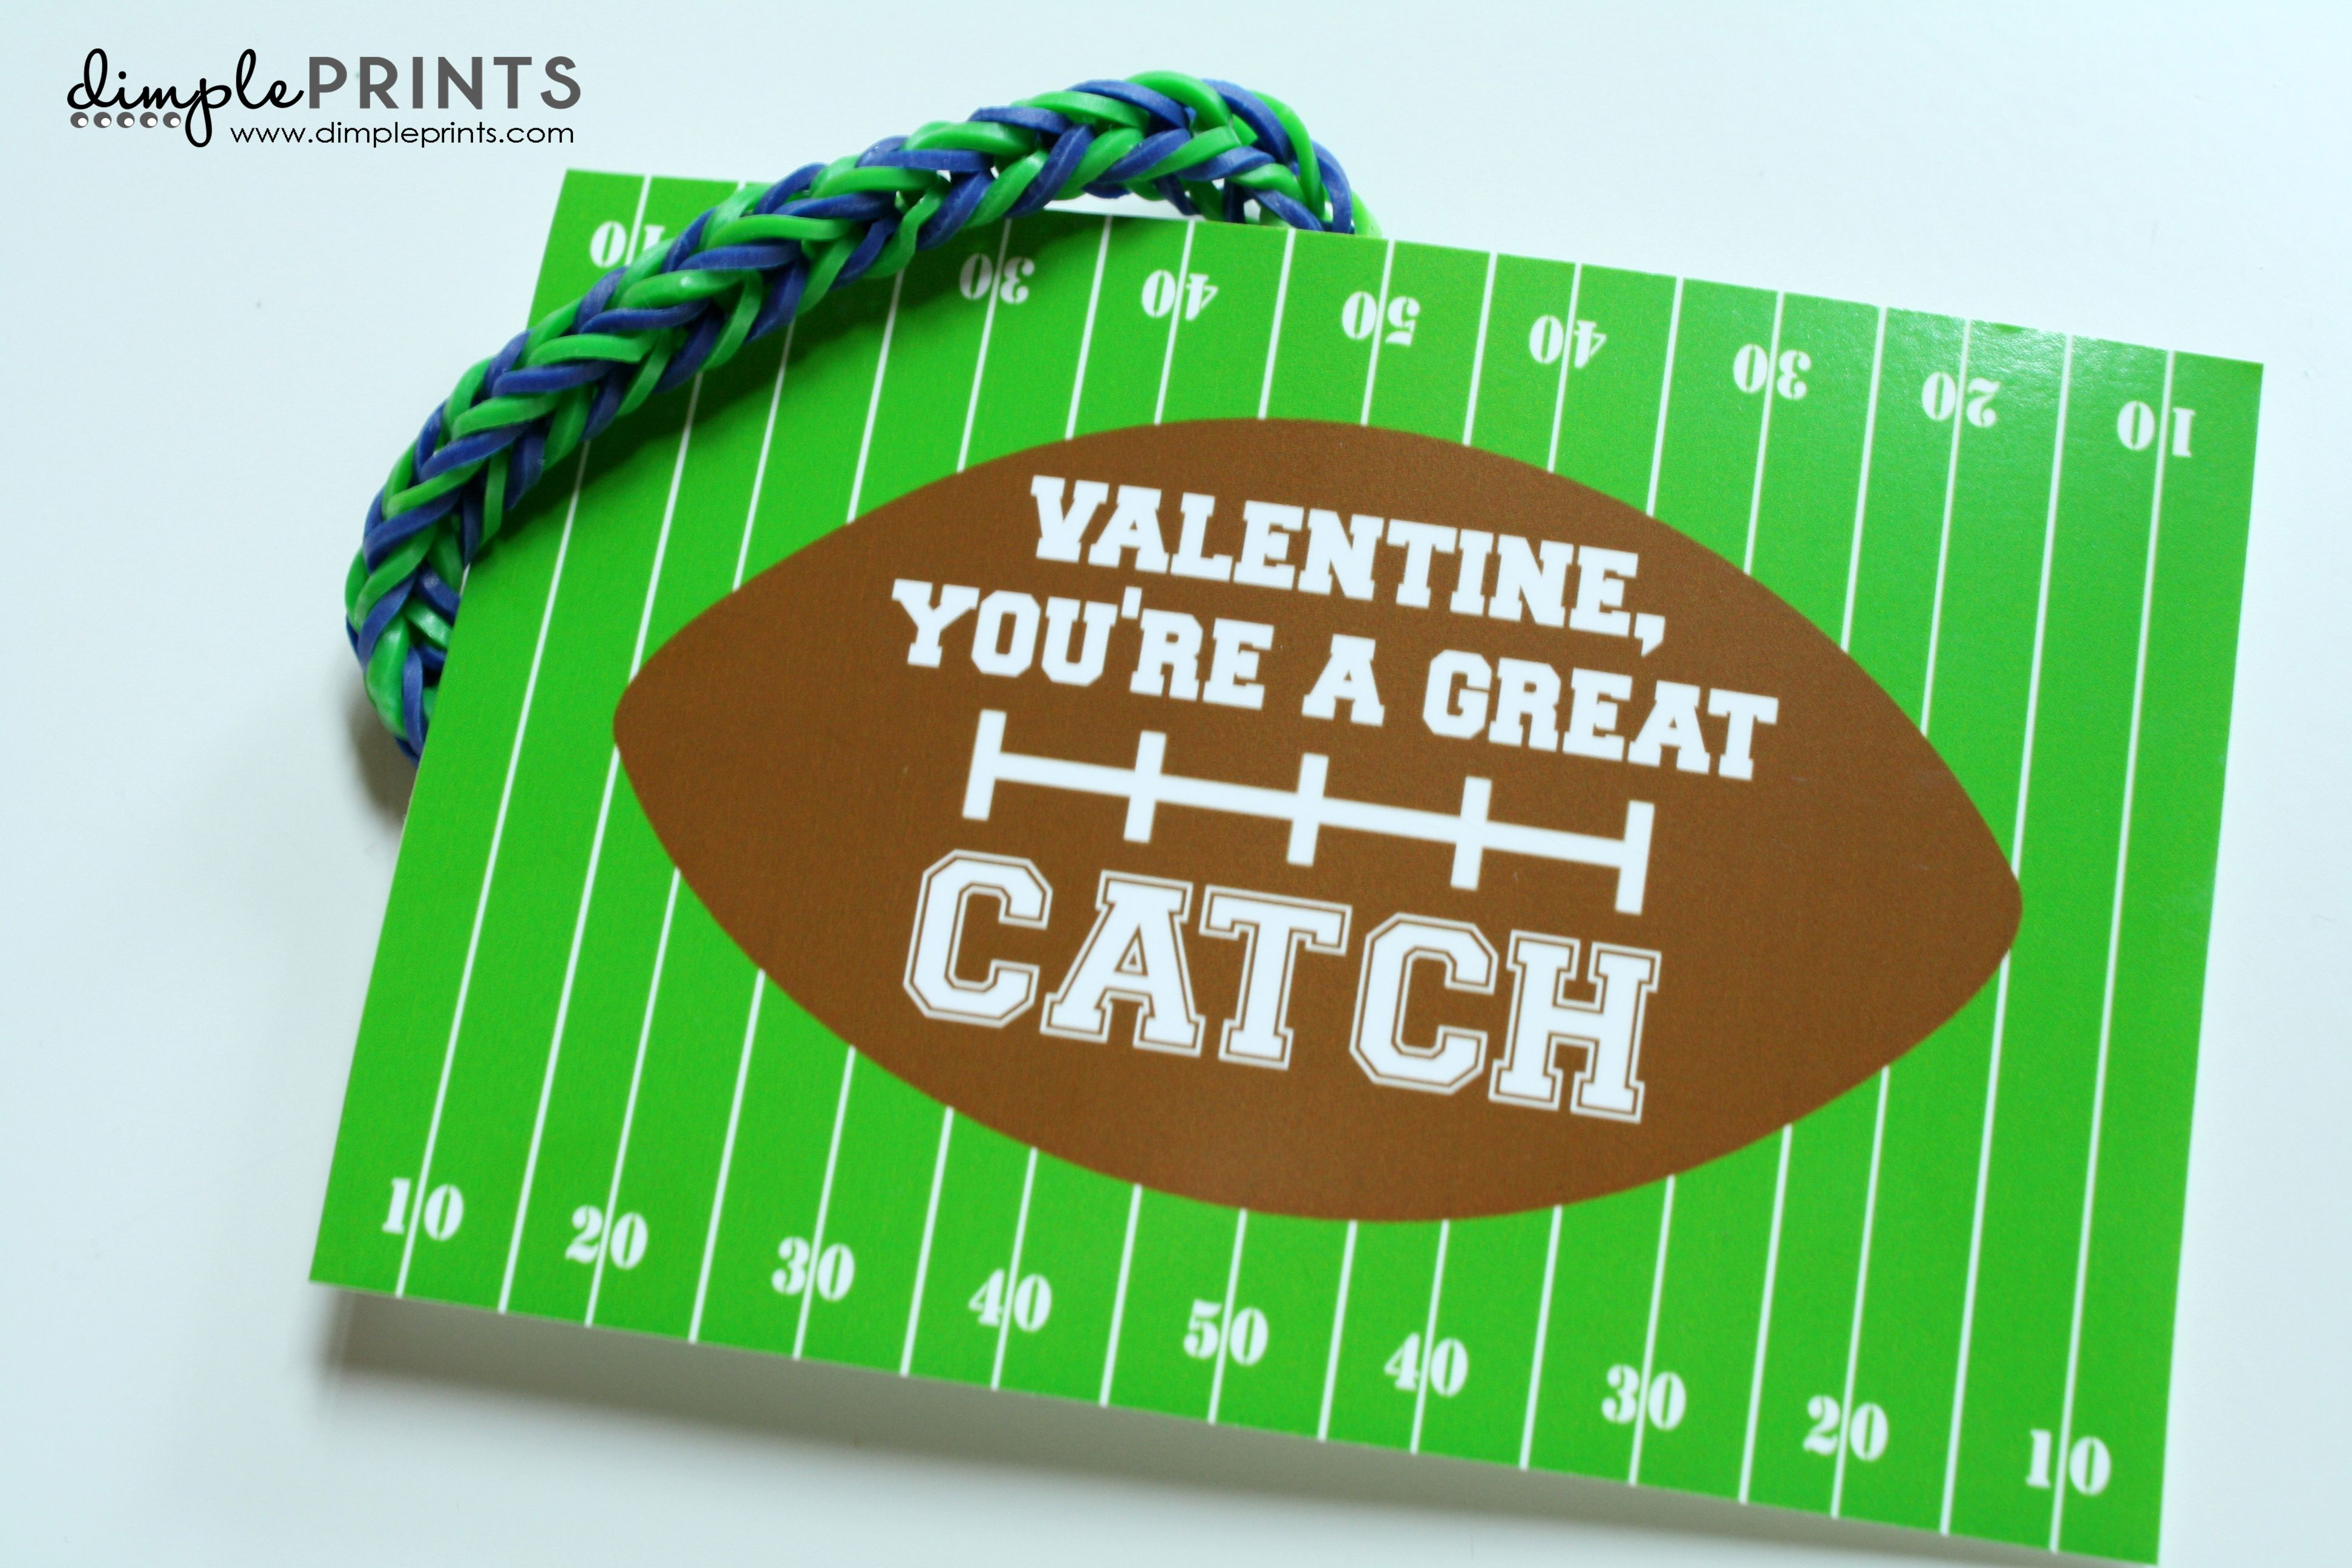 Free Valentine's Day FOOTBALL prints from DimplePrints